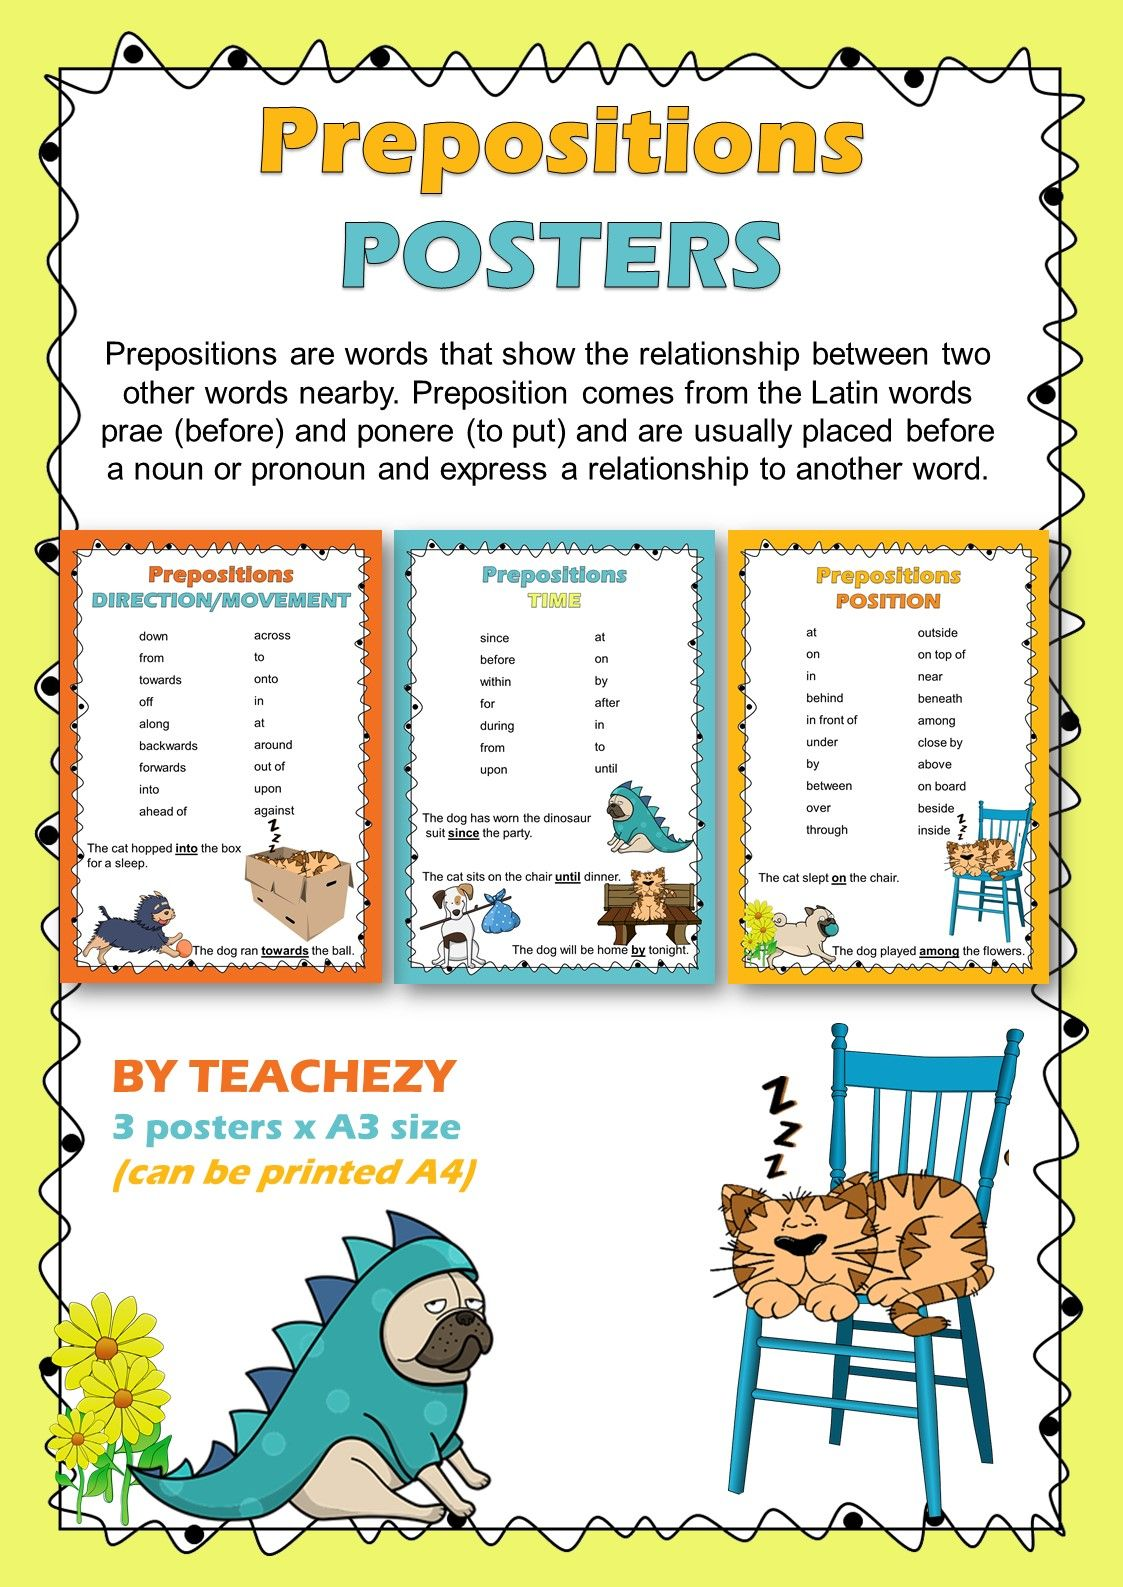 3 Posters Displaying Prepositions Of Direction Movement